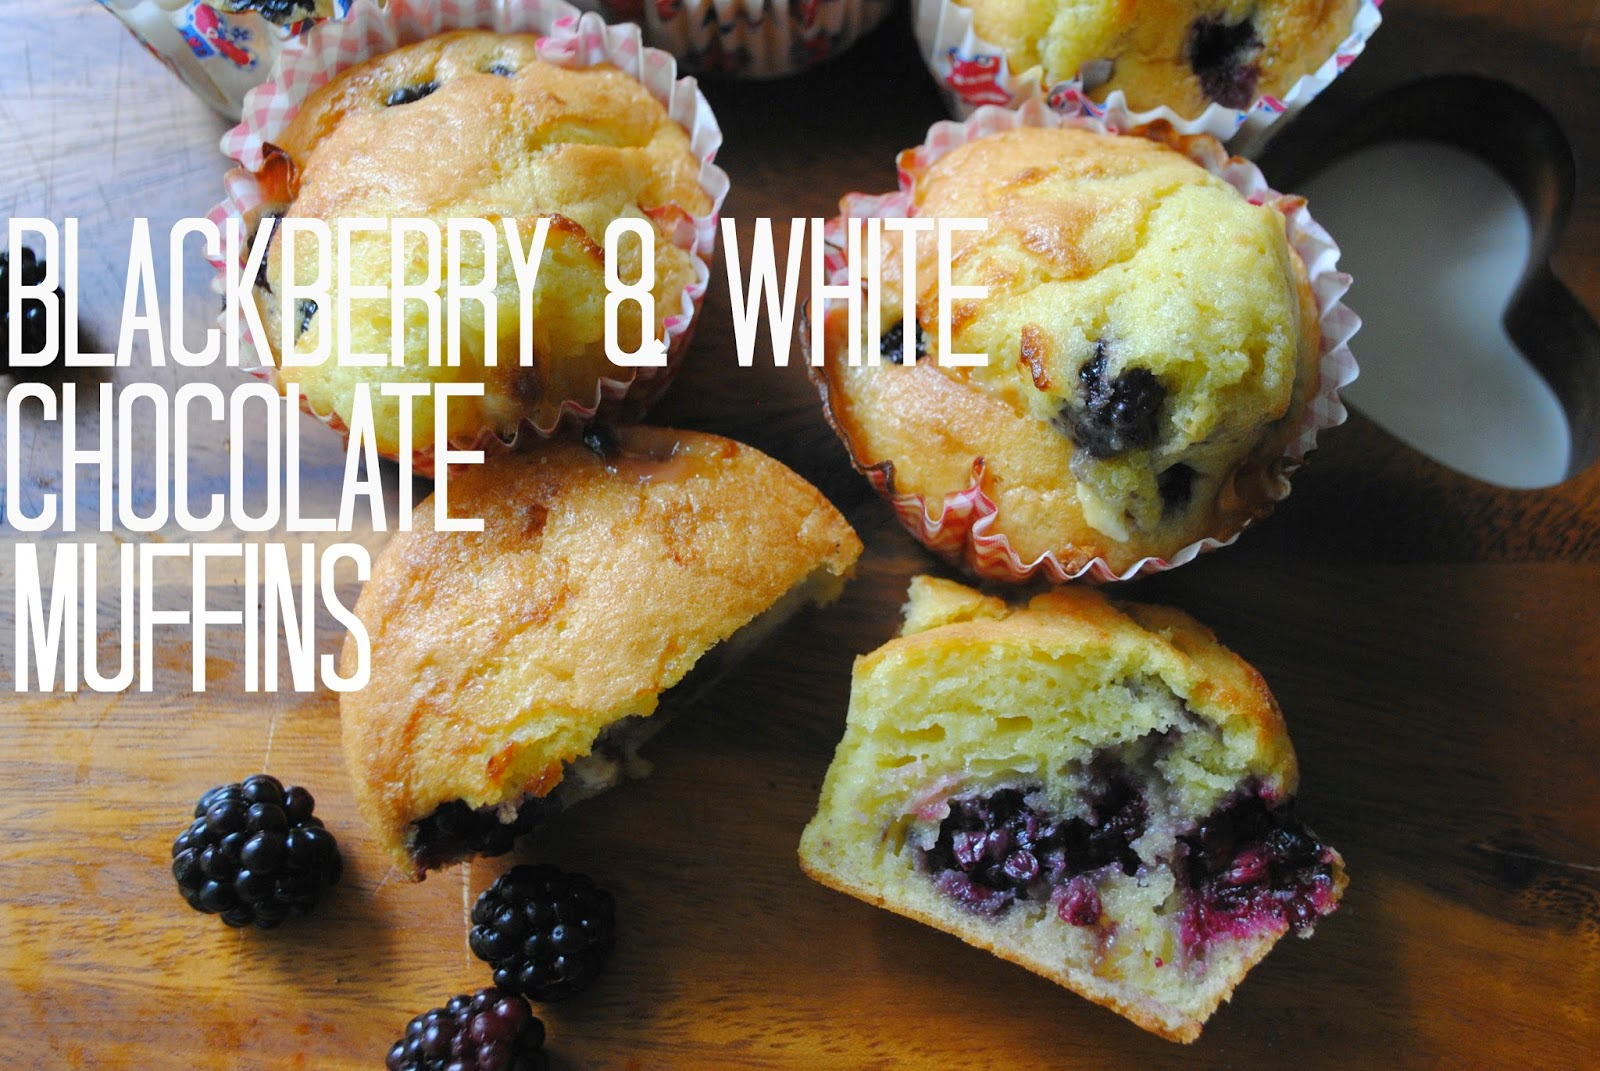 Blackberry and white chocolate muffin recipe